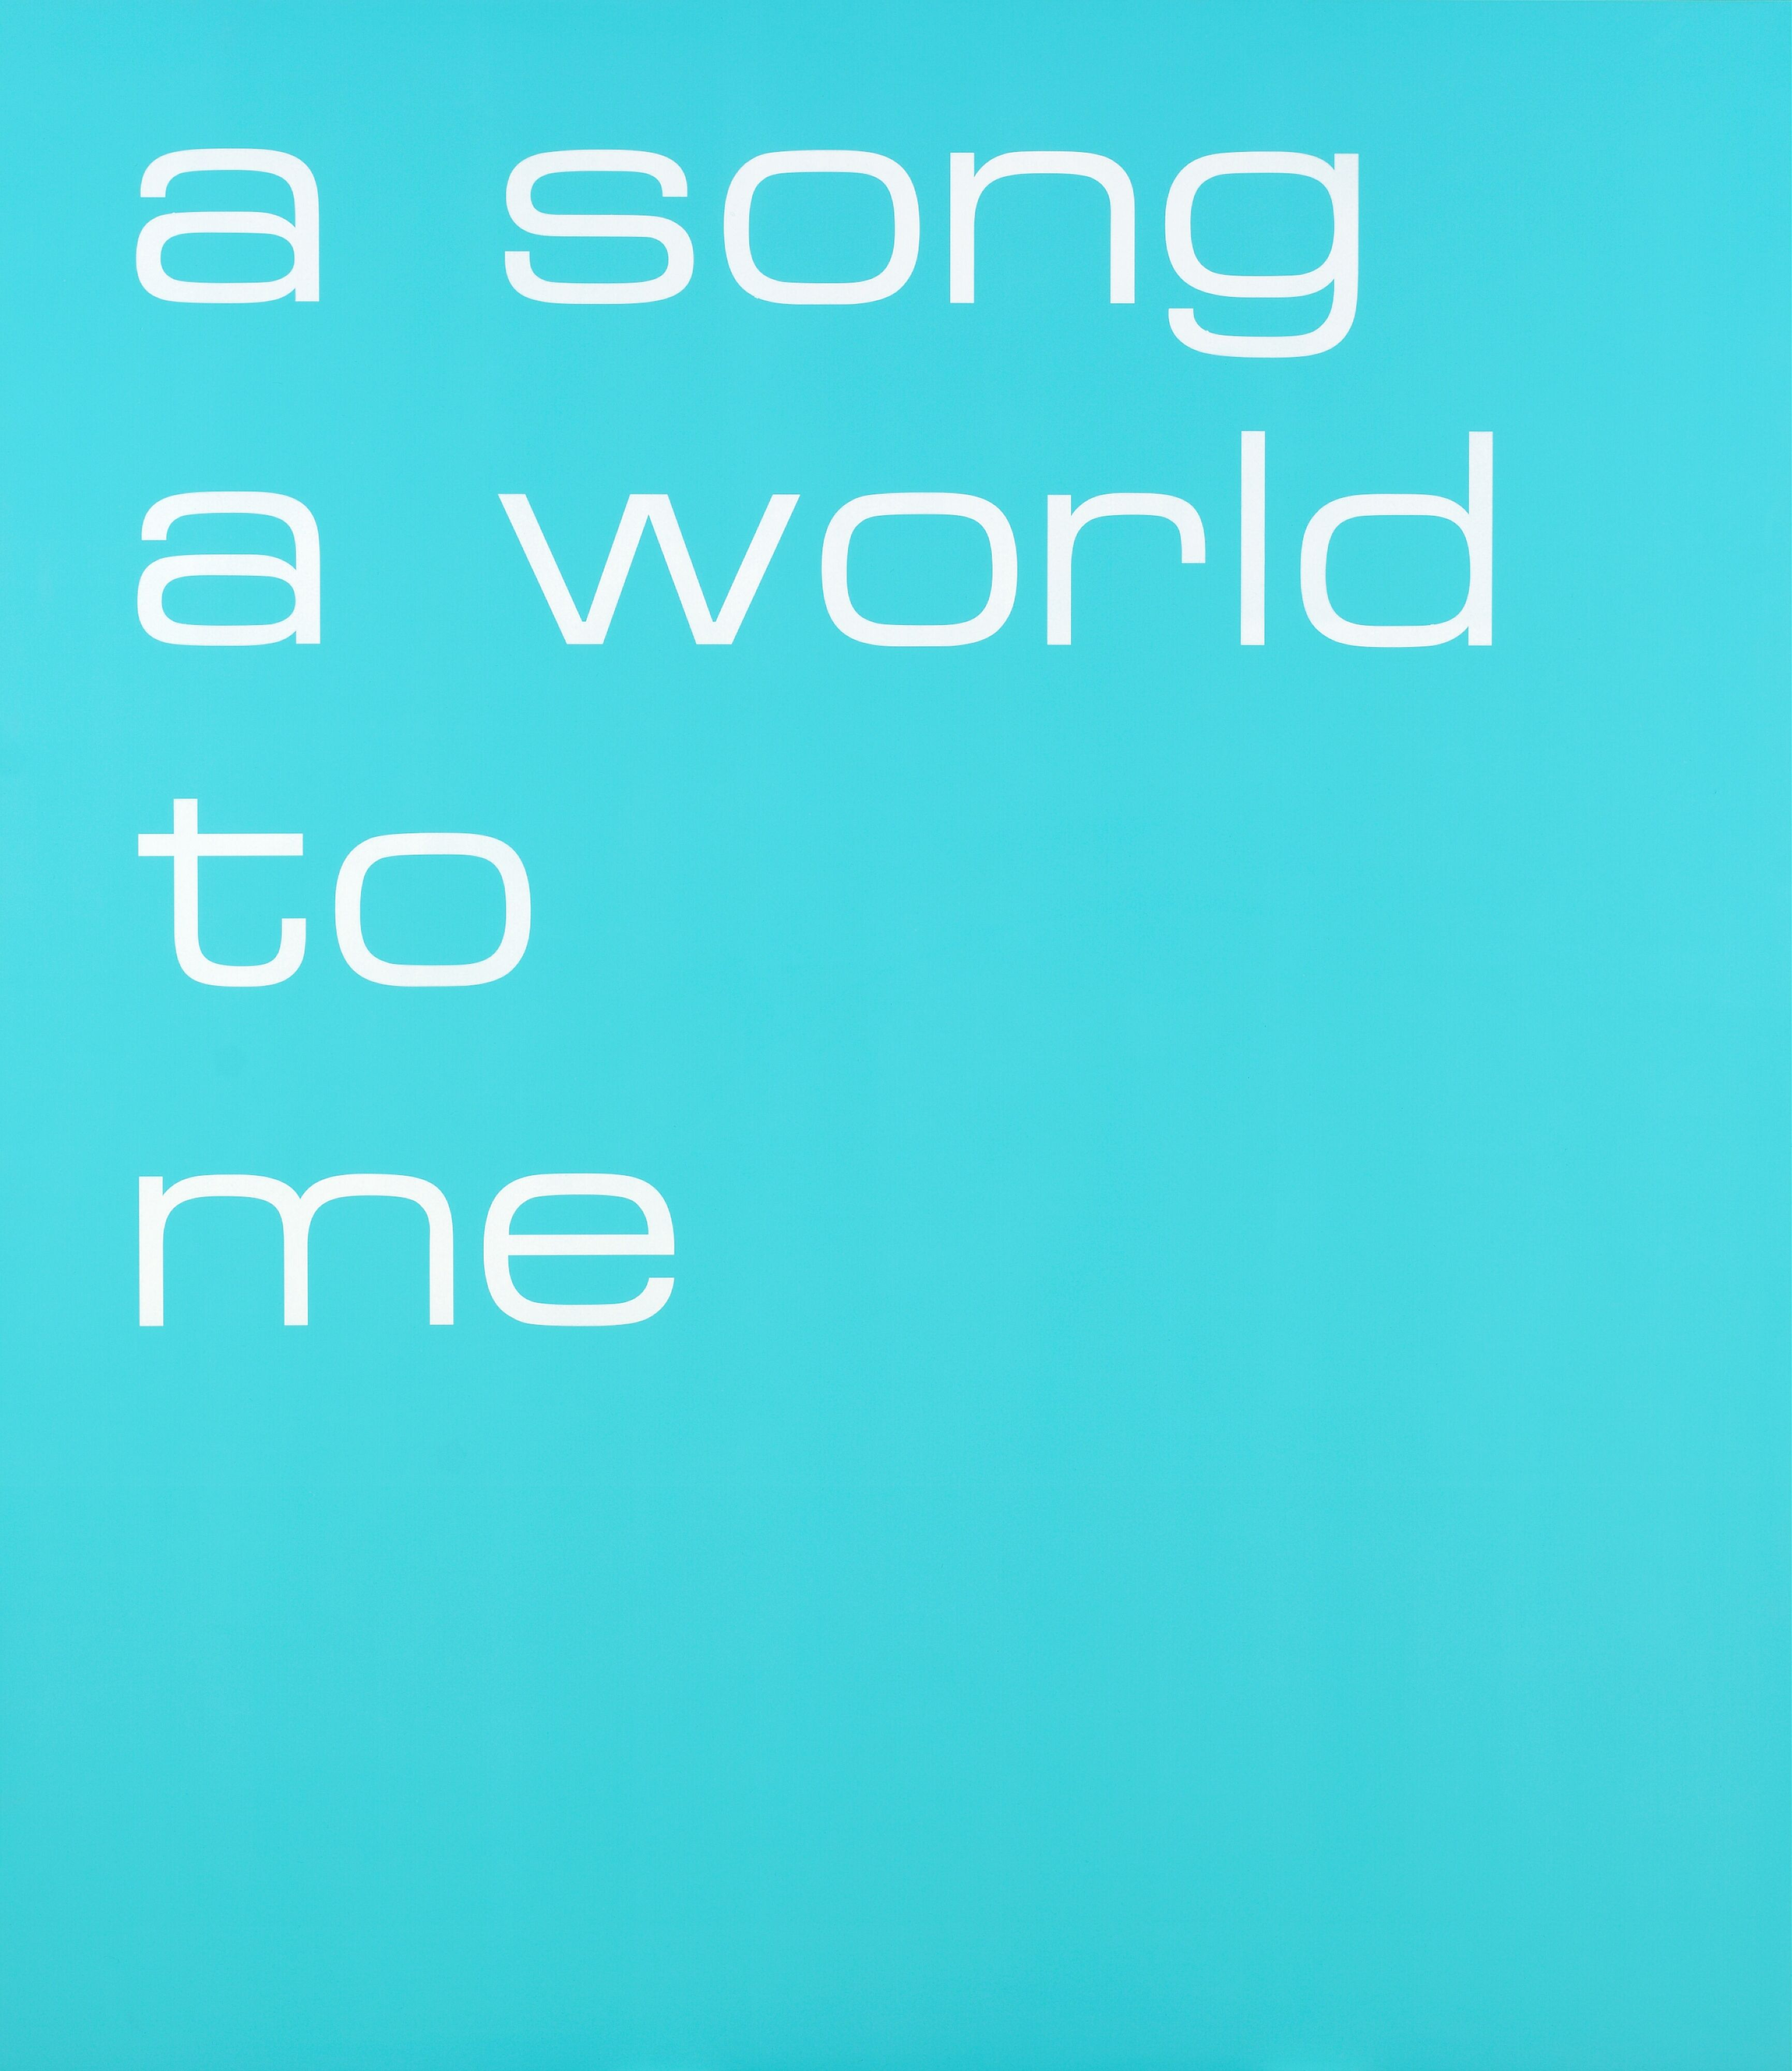 A song a world to me